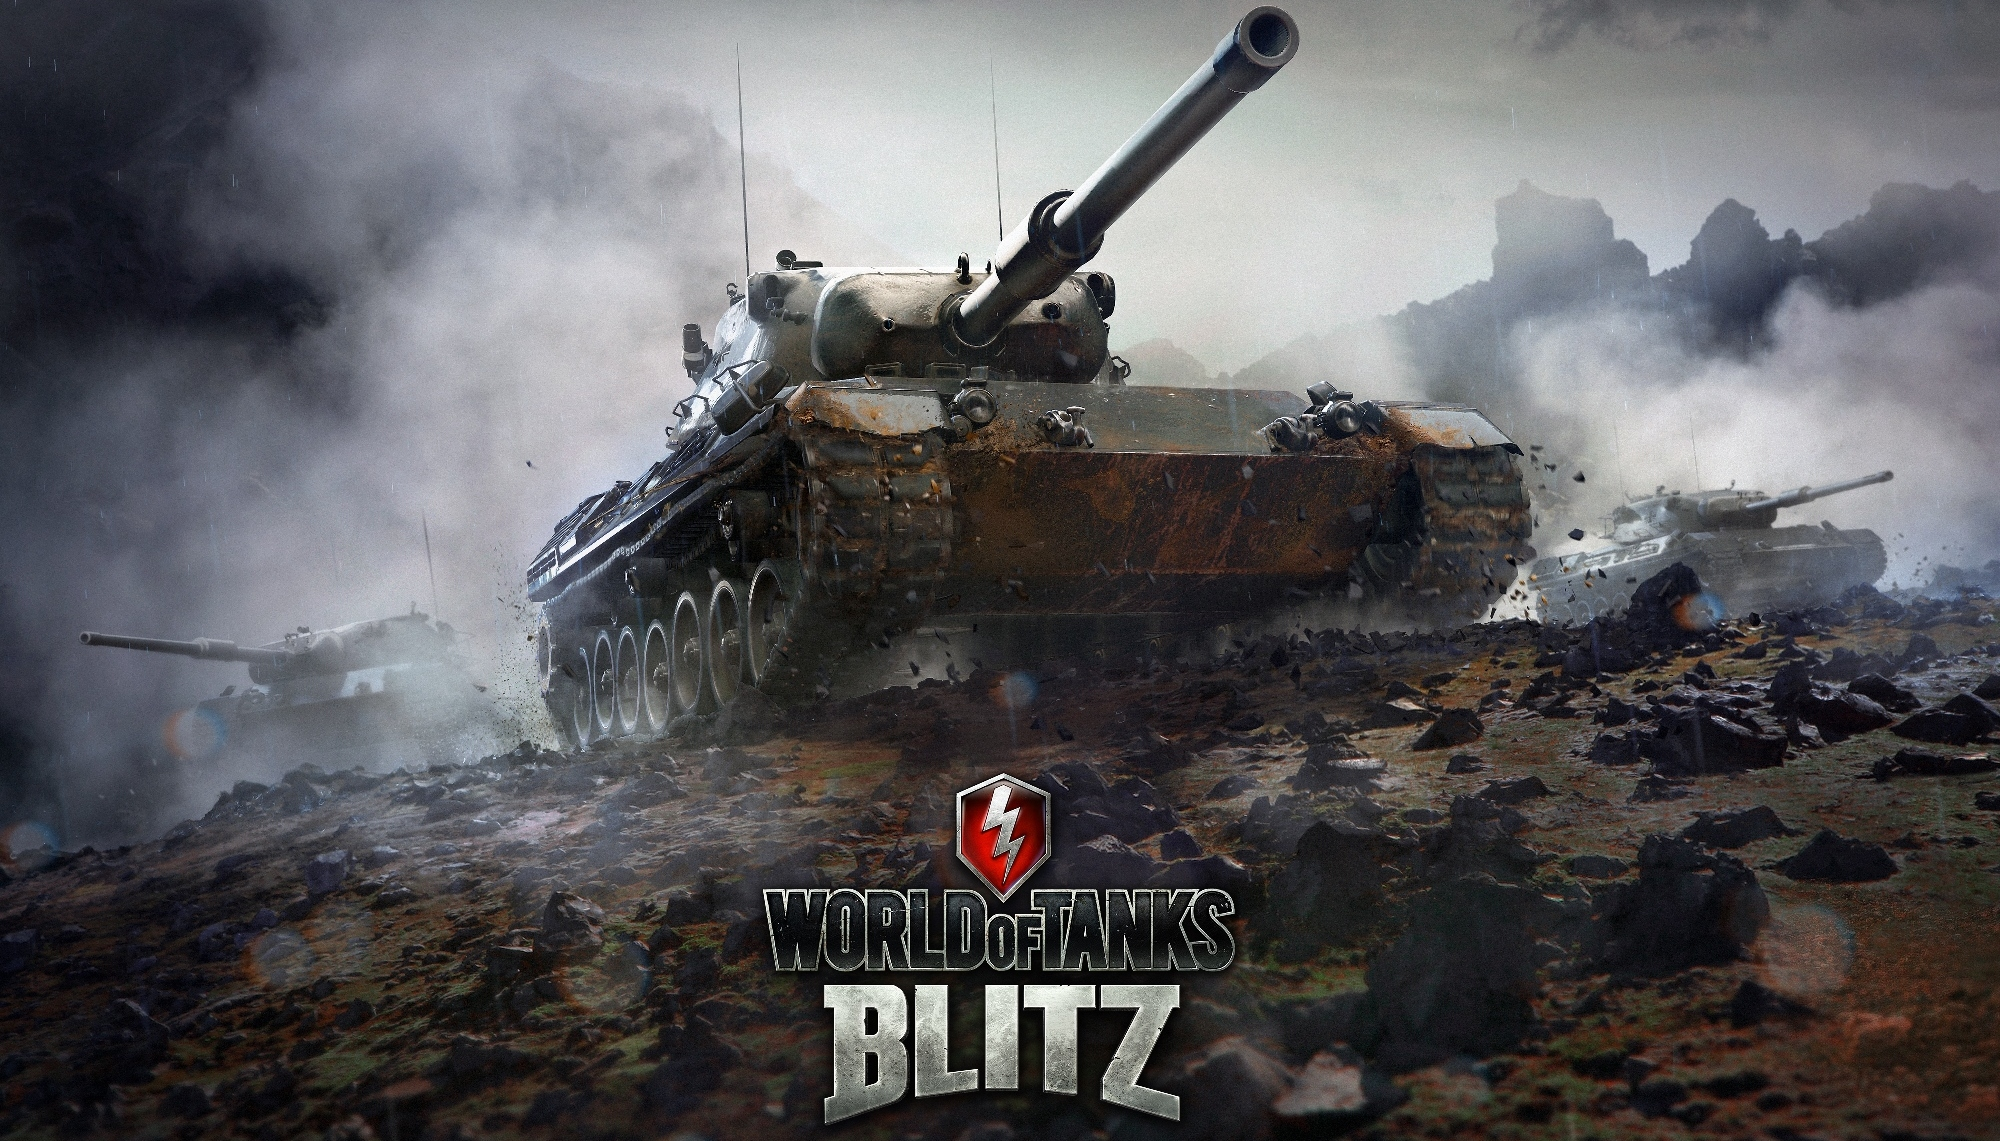 World of Tanks Blitz will be released on OS X